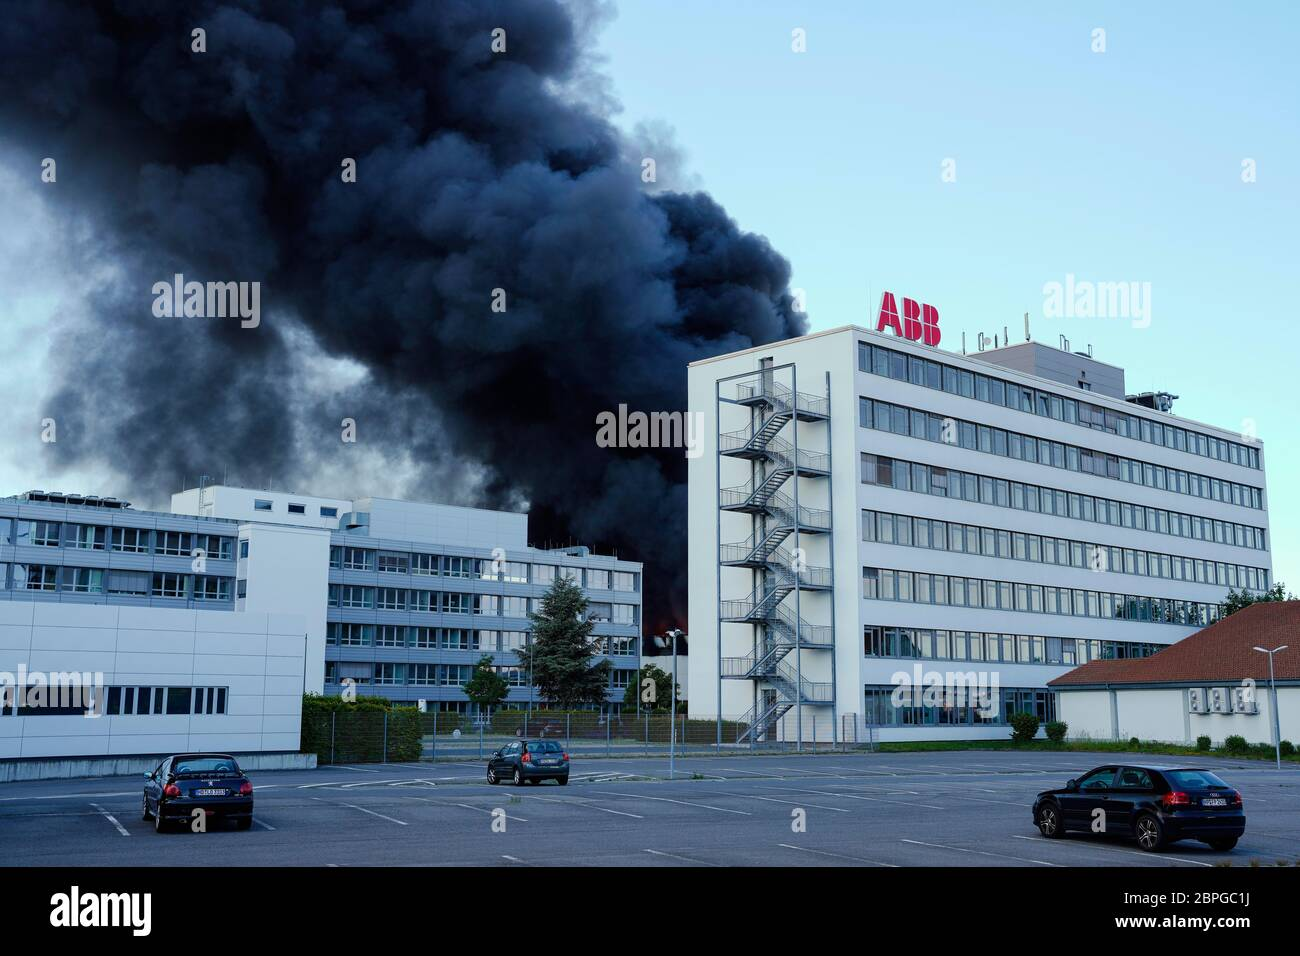 Ladenburg, Germany. 19th May, 2020. Clouds of smoke rise from a plastics factory behind a building belonging to the ABB company. Due to a major fire in a factory building in Ladenburg (Rhine-Neckar district) a large cloud of smoke formed over the region. Credit: Uwe Anspach/dpa/Alamy Live News Stock Photo